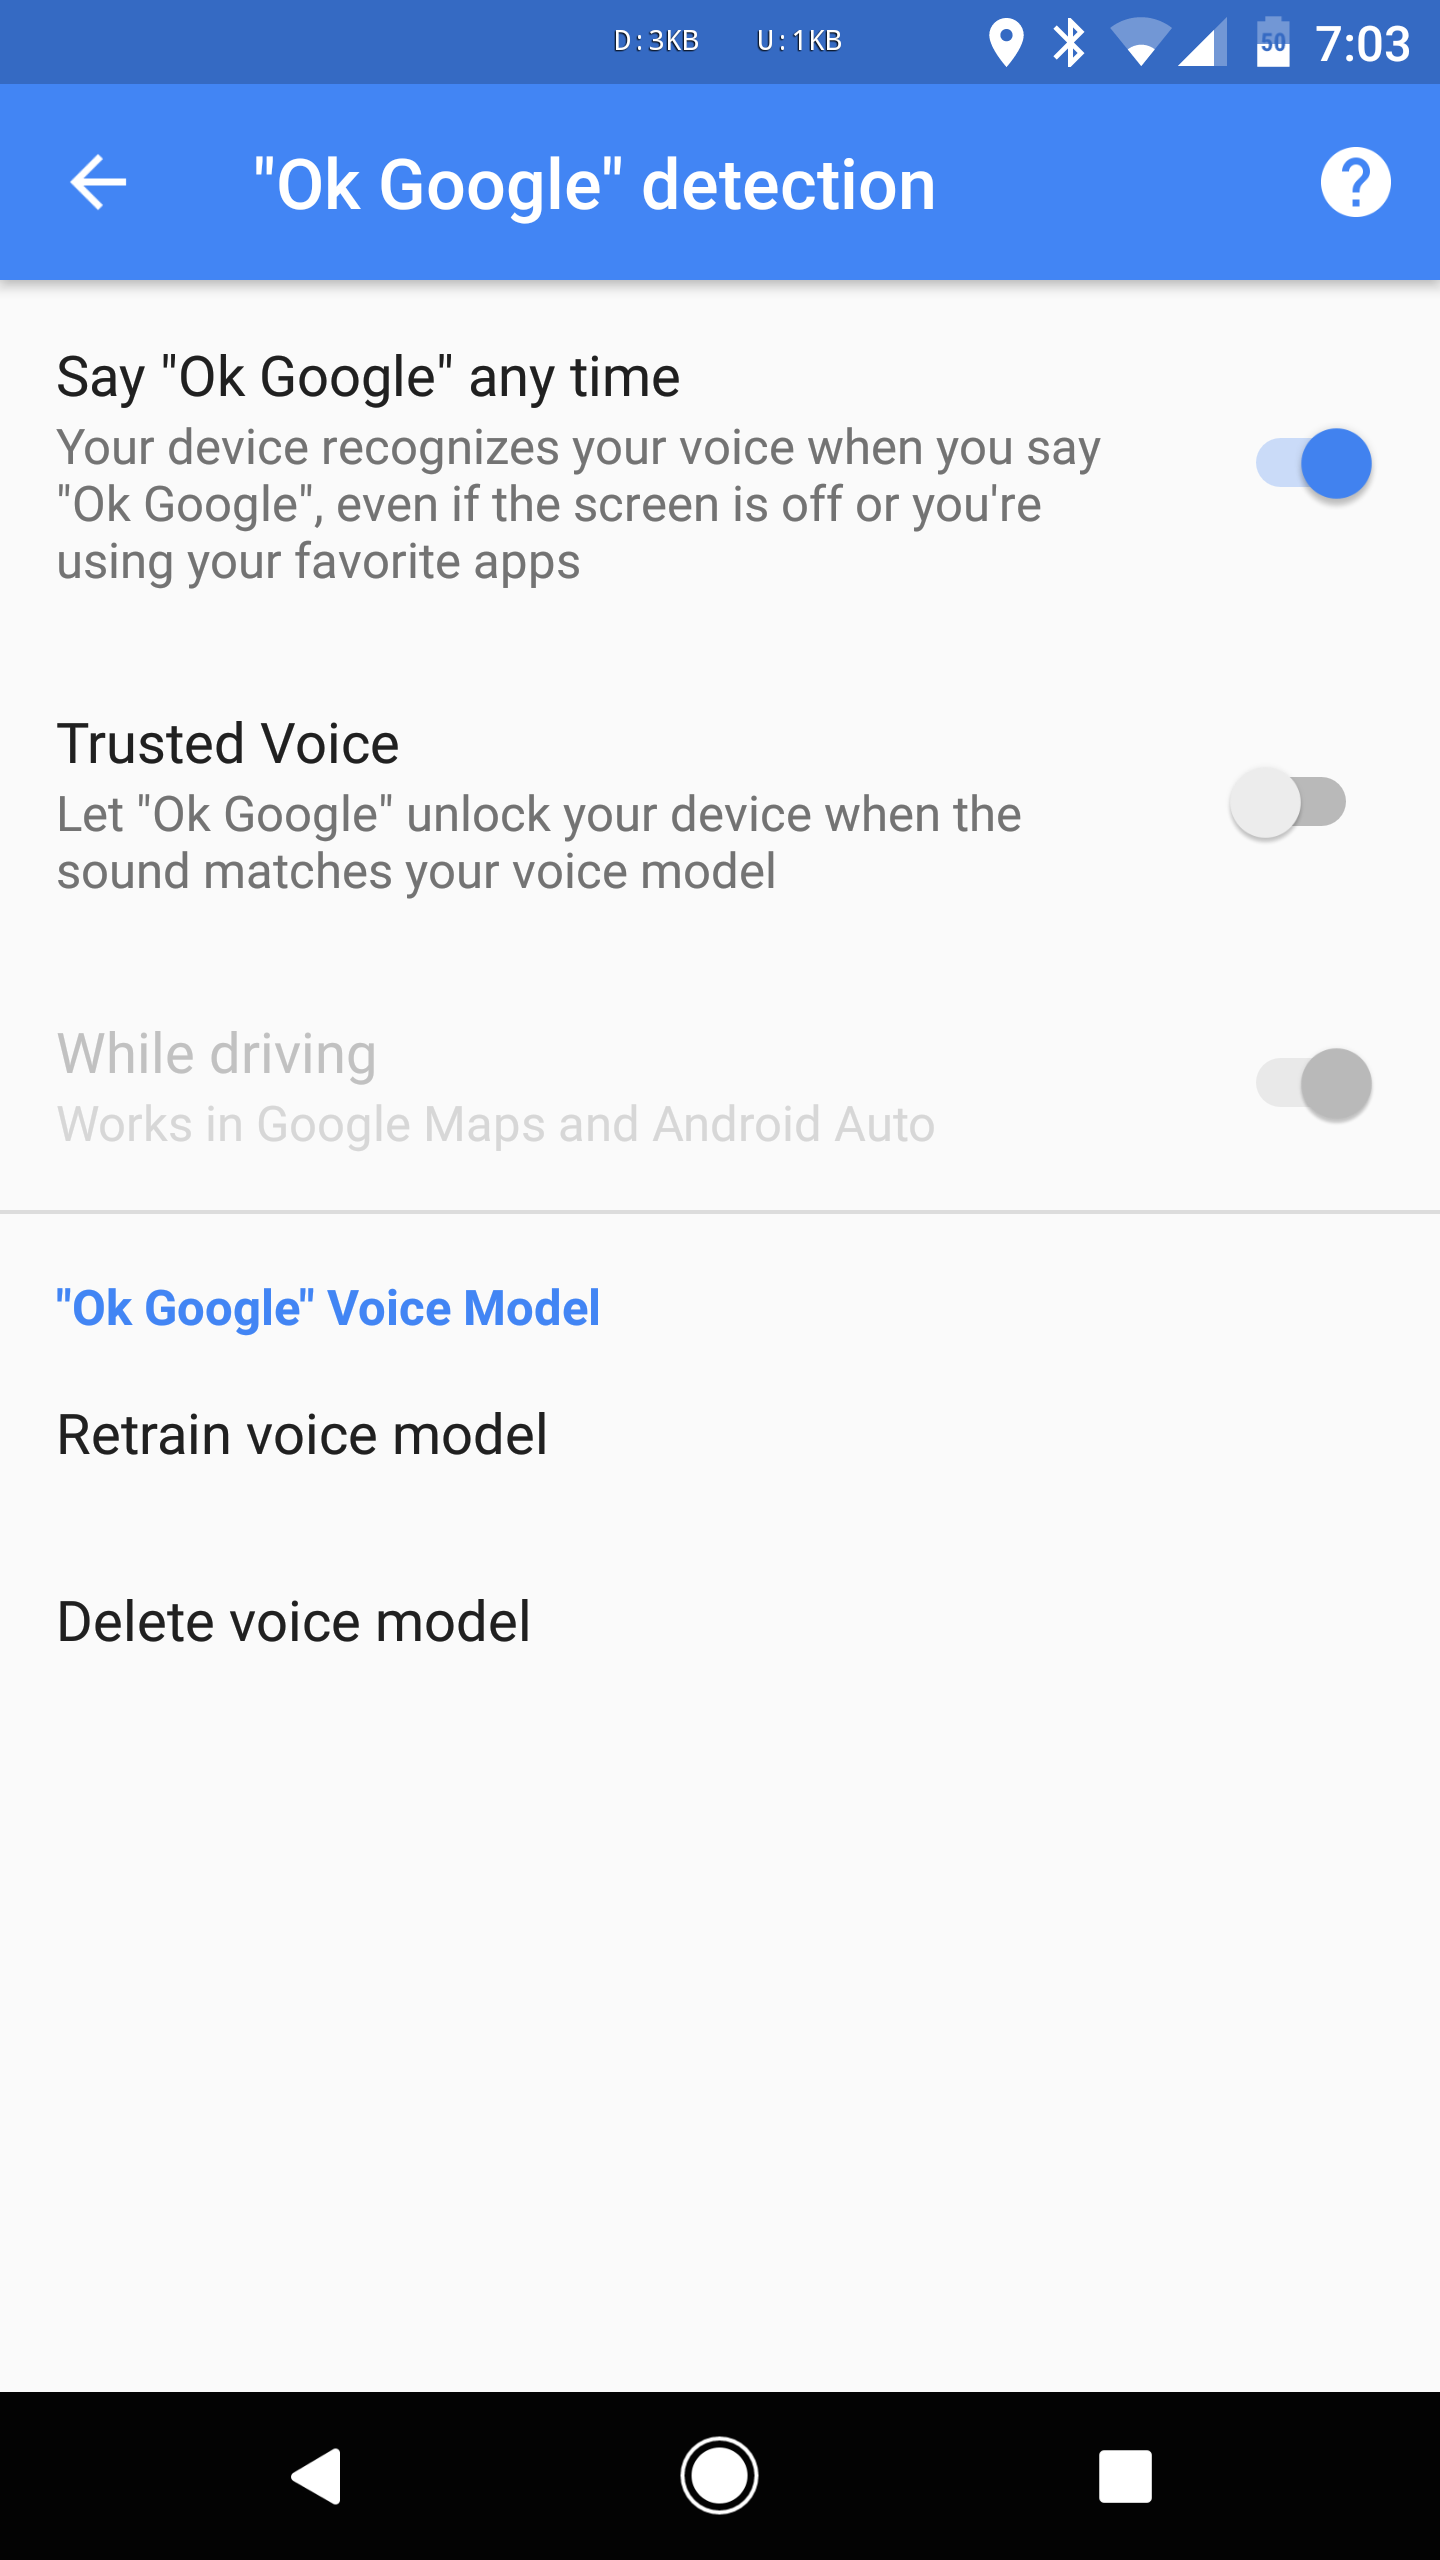 Google's 'Trusted Voice' feature keeps turning off for some